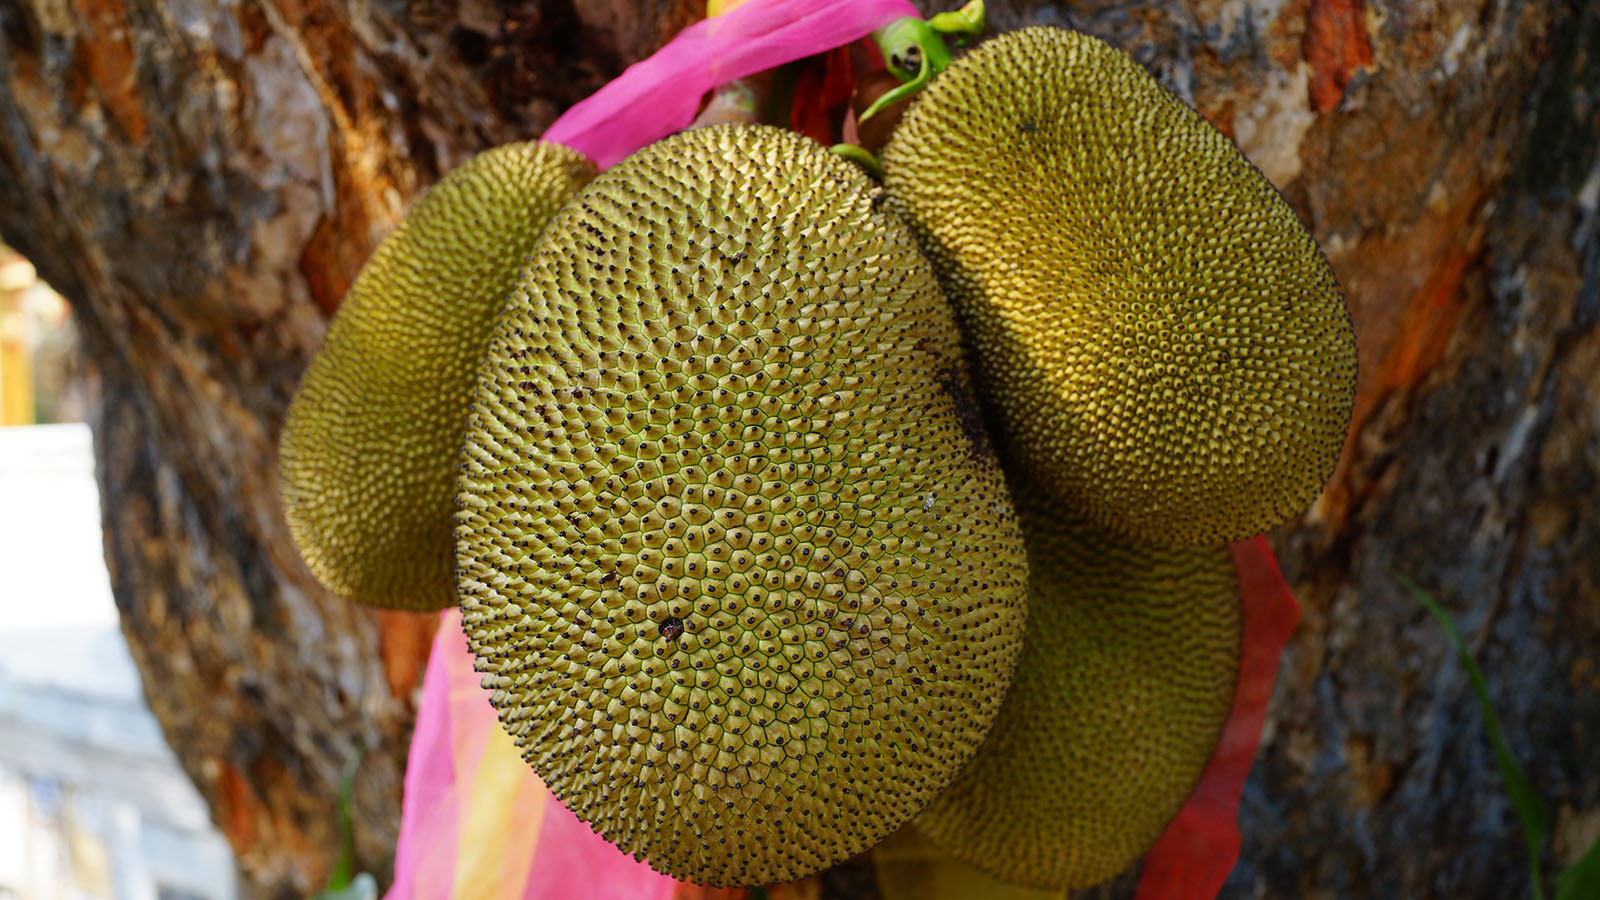 Jackfruit Is a Stinky, but Otherwise, Perfect Fruit